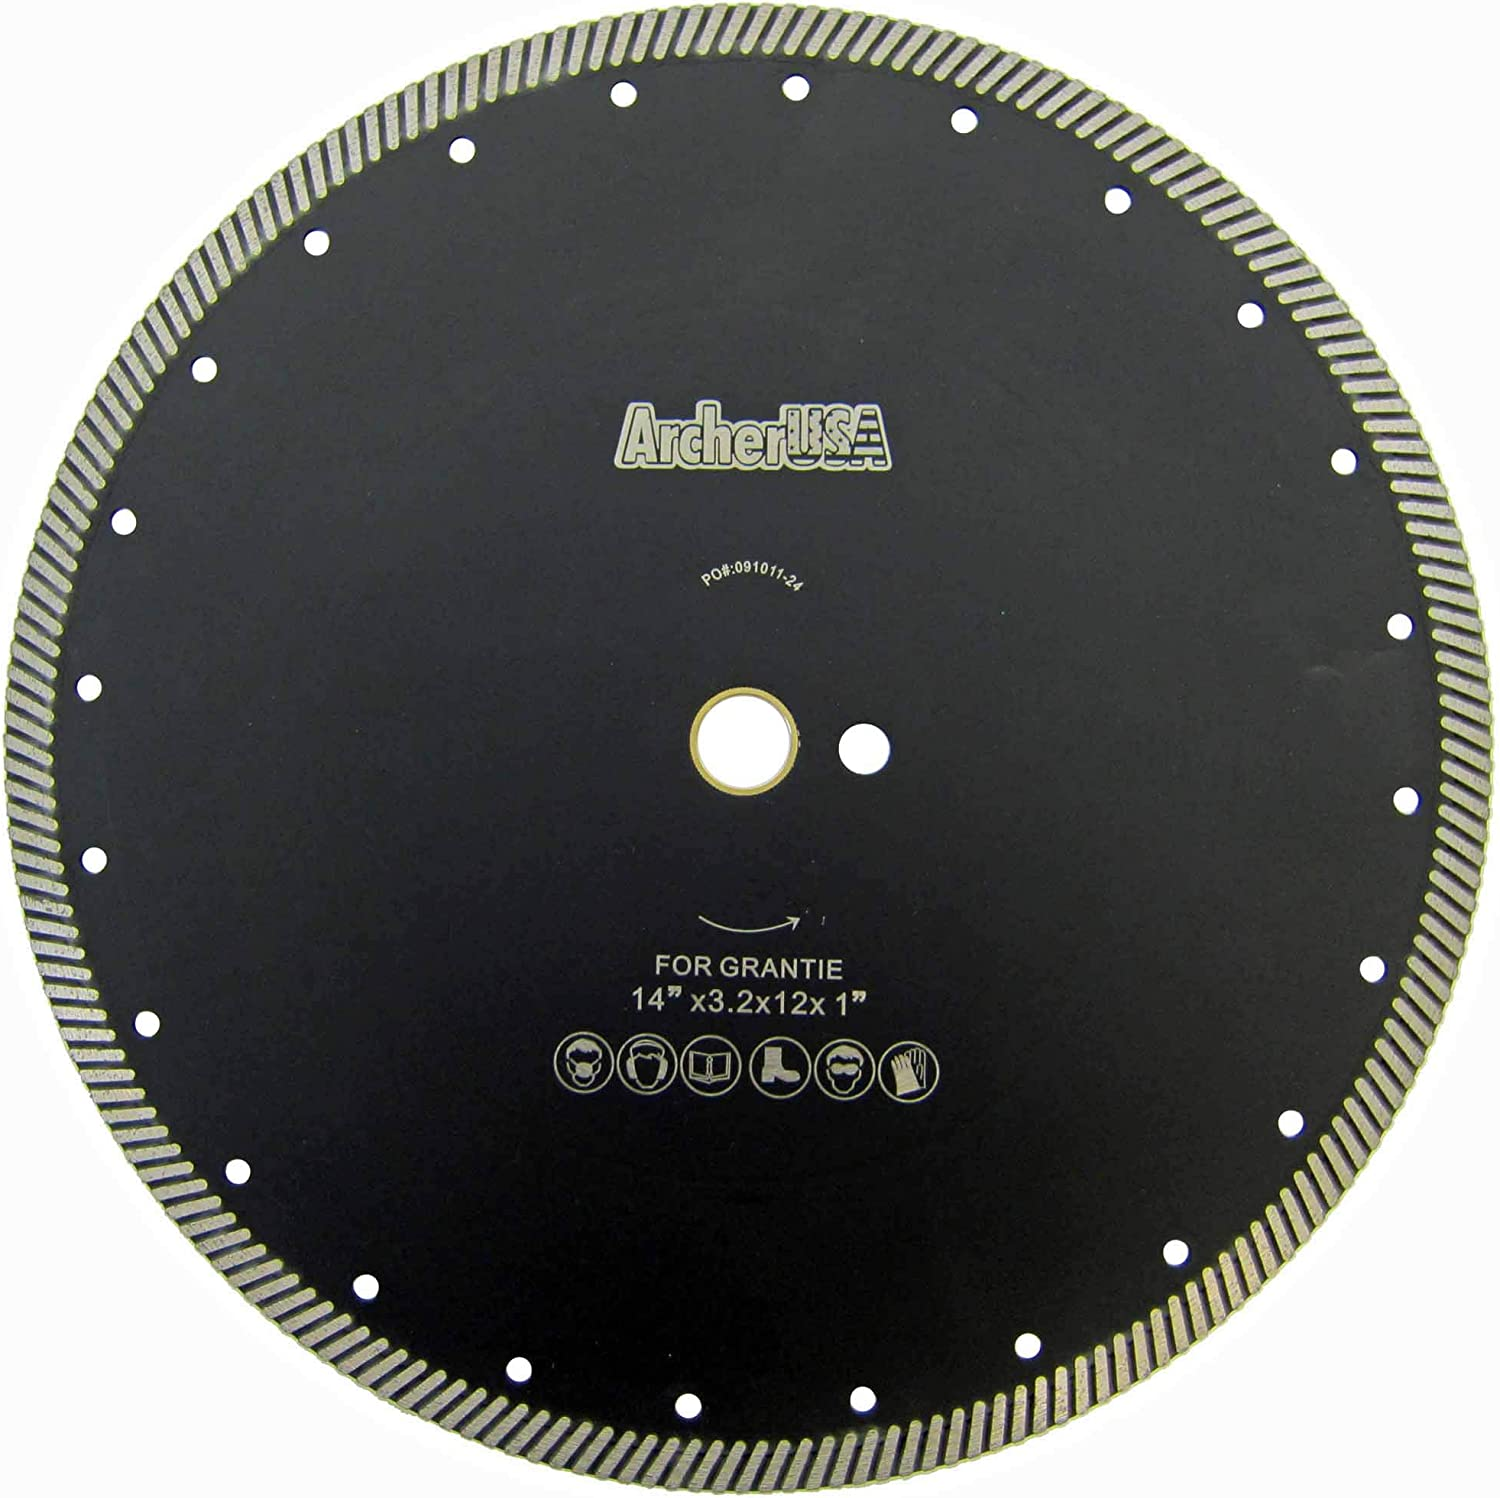 9 sizes from 4 inch to 14 in. Archer PRO 5 Narrow Turbo Rim Diamond Blades for Cutting Granite Stone Masonry Counter-top slabs